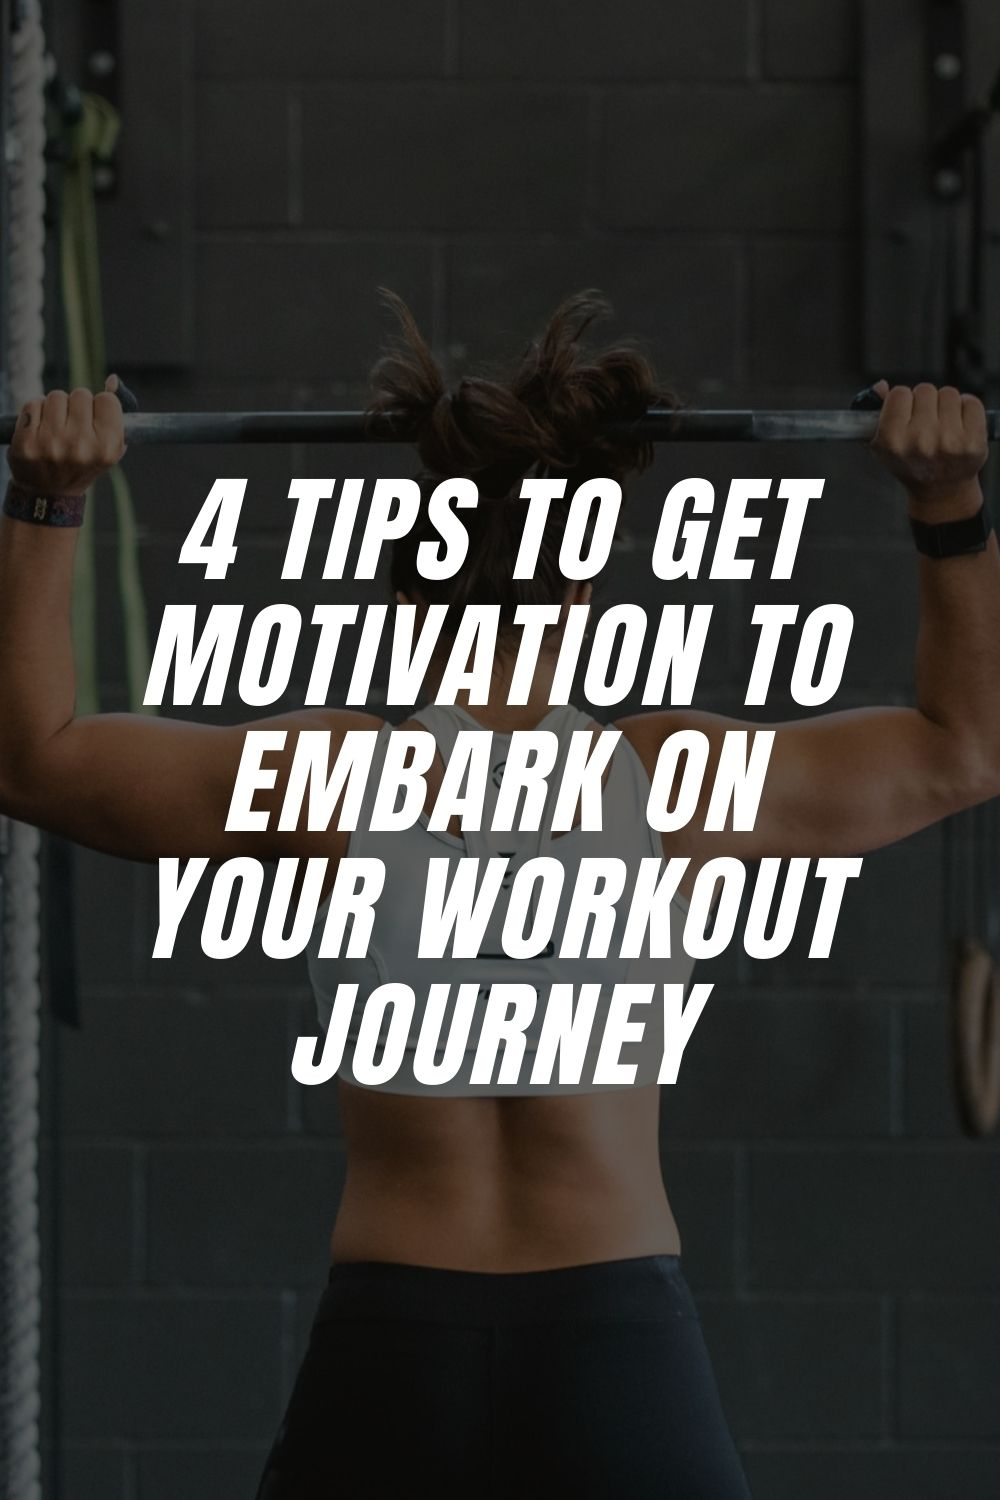 4 Tips to Get Motivation to Embark on Your Workout Journey